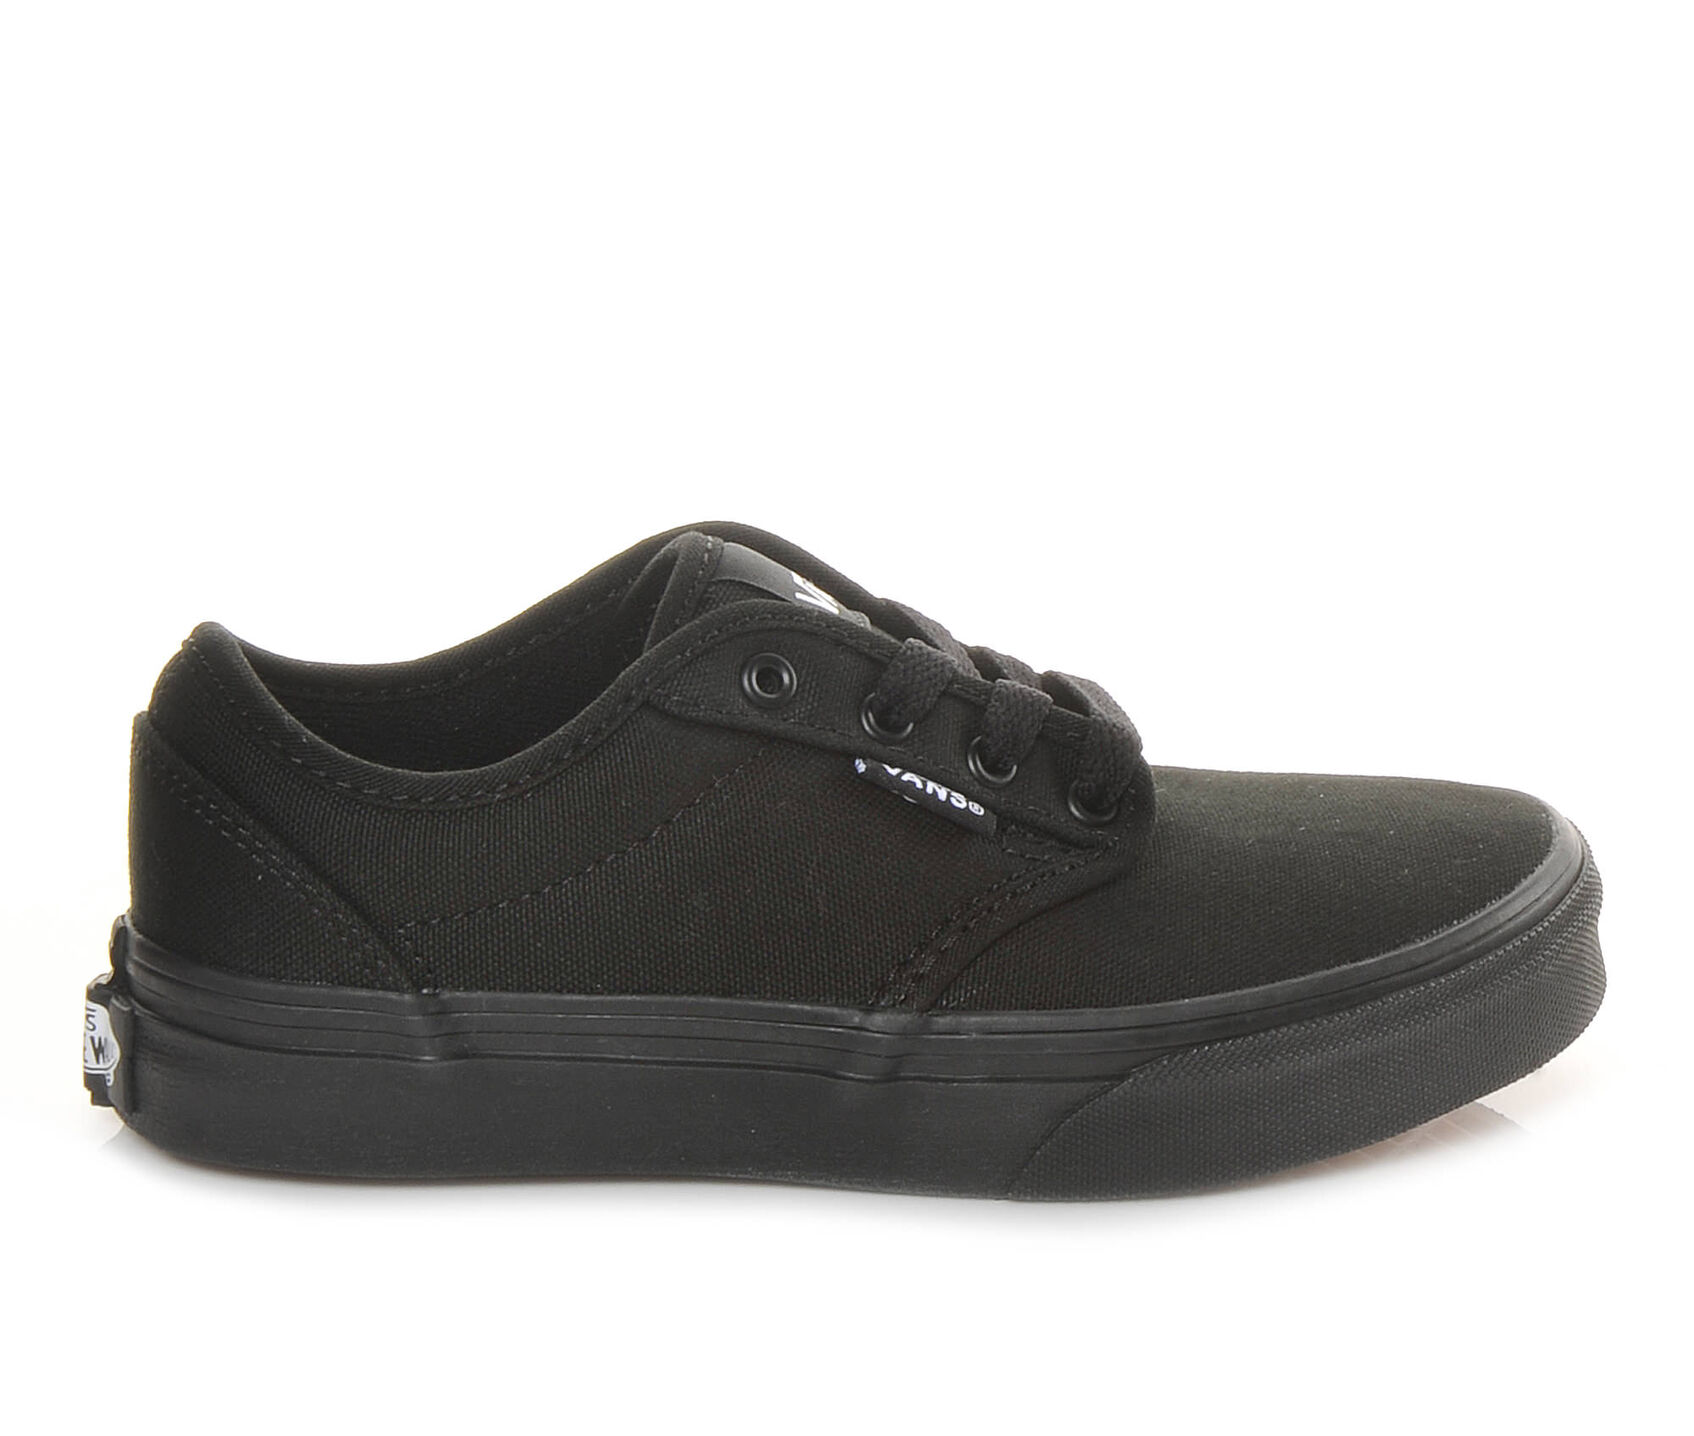 Boys' Vans Atwood 10.5-7 Skate Shoes | Shoe Carnival